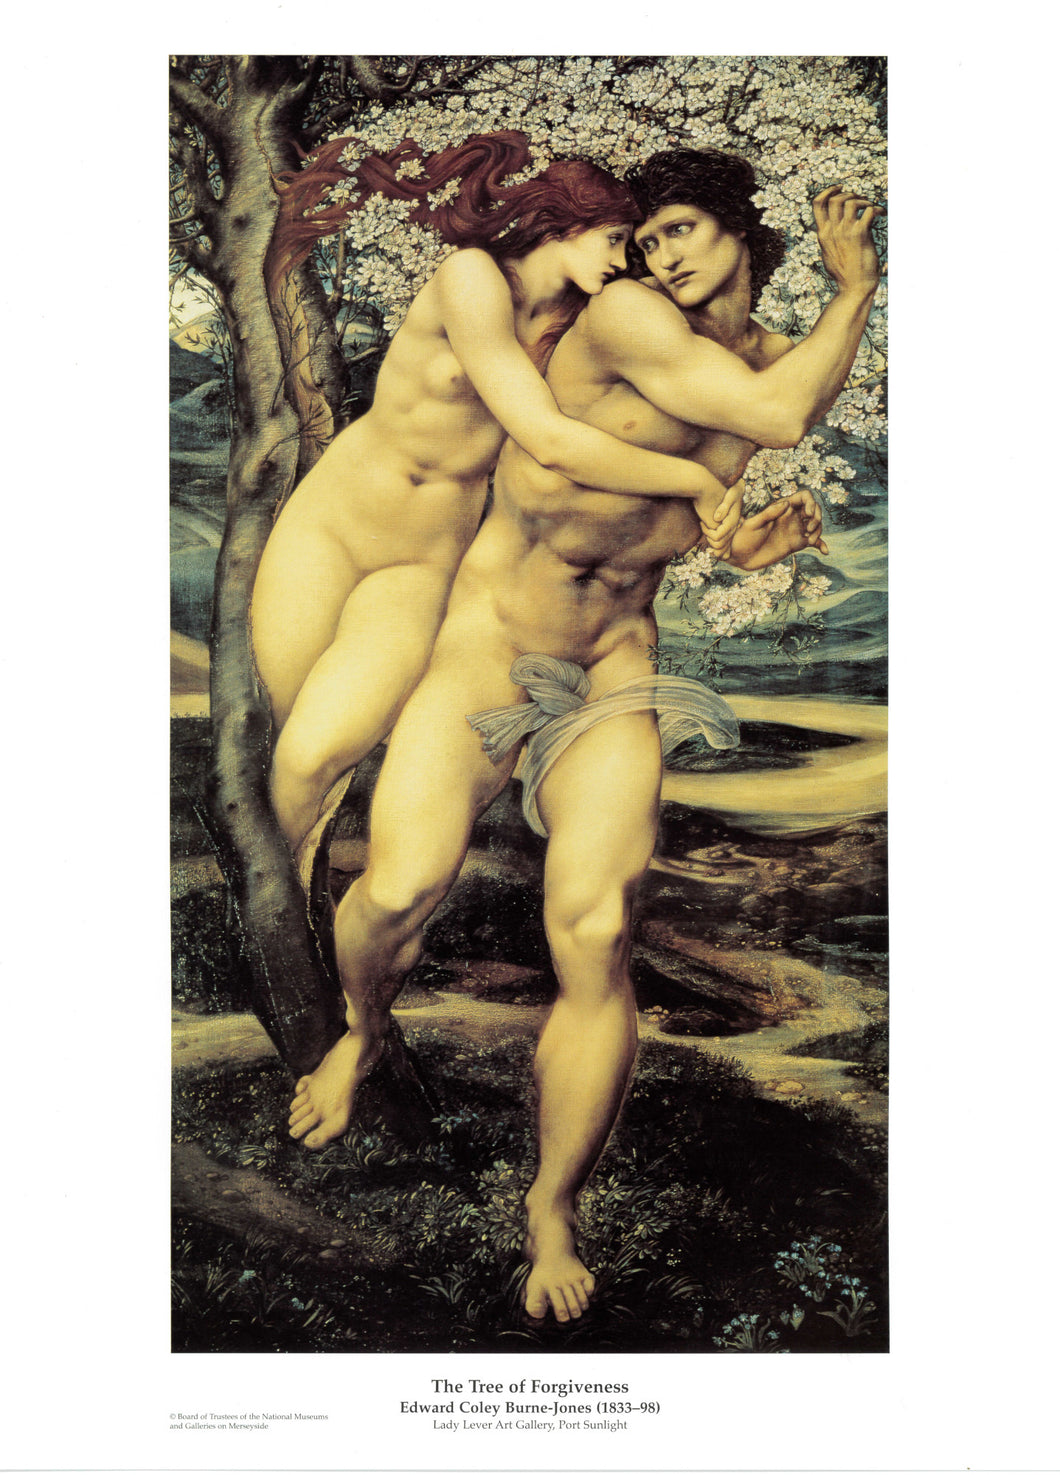 The Tree of Forgiveness print shows a nude man and a woman embracing against a tree.